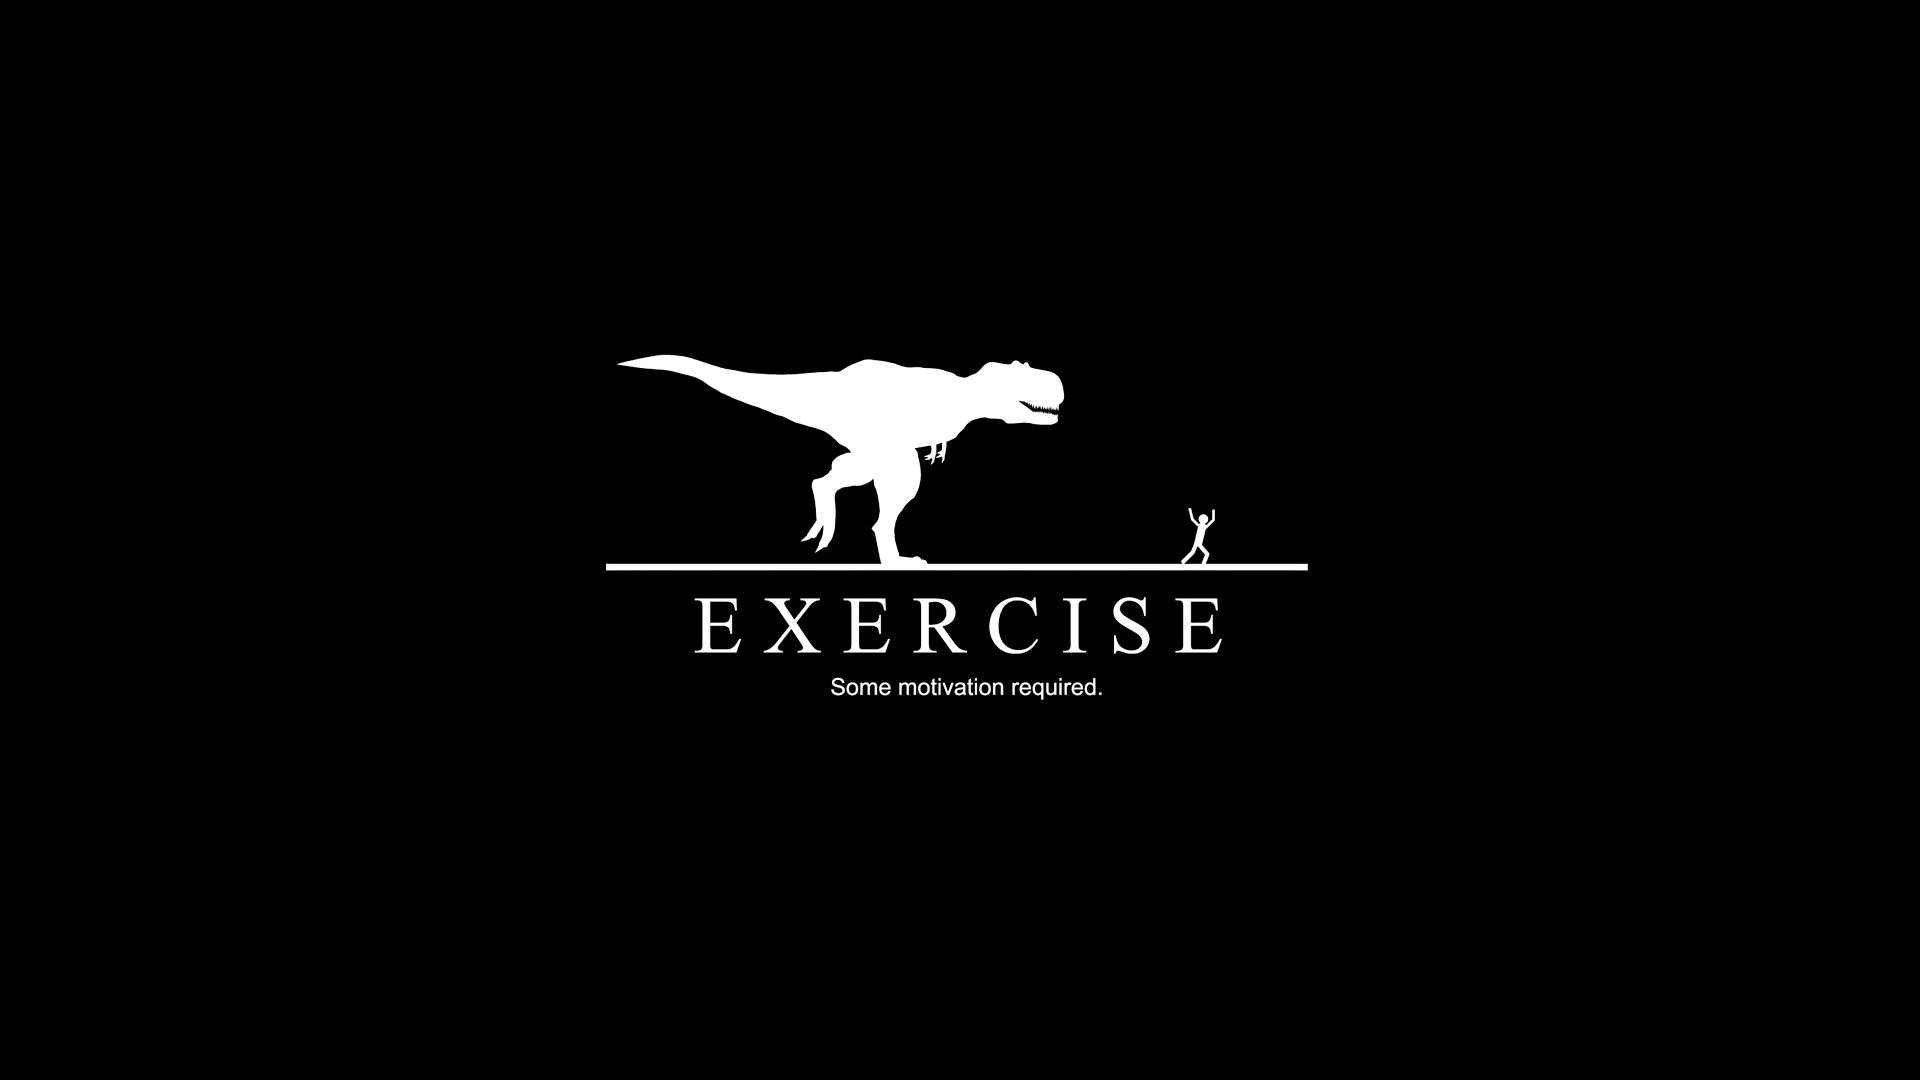 Fitness Motivation Wallpaper Images Pictures   Becuo 1920x1080